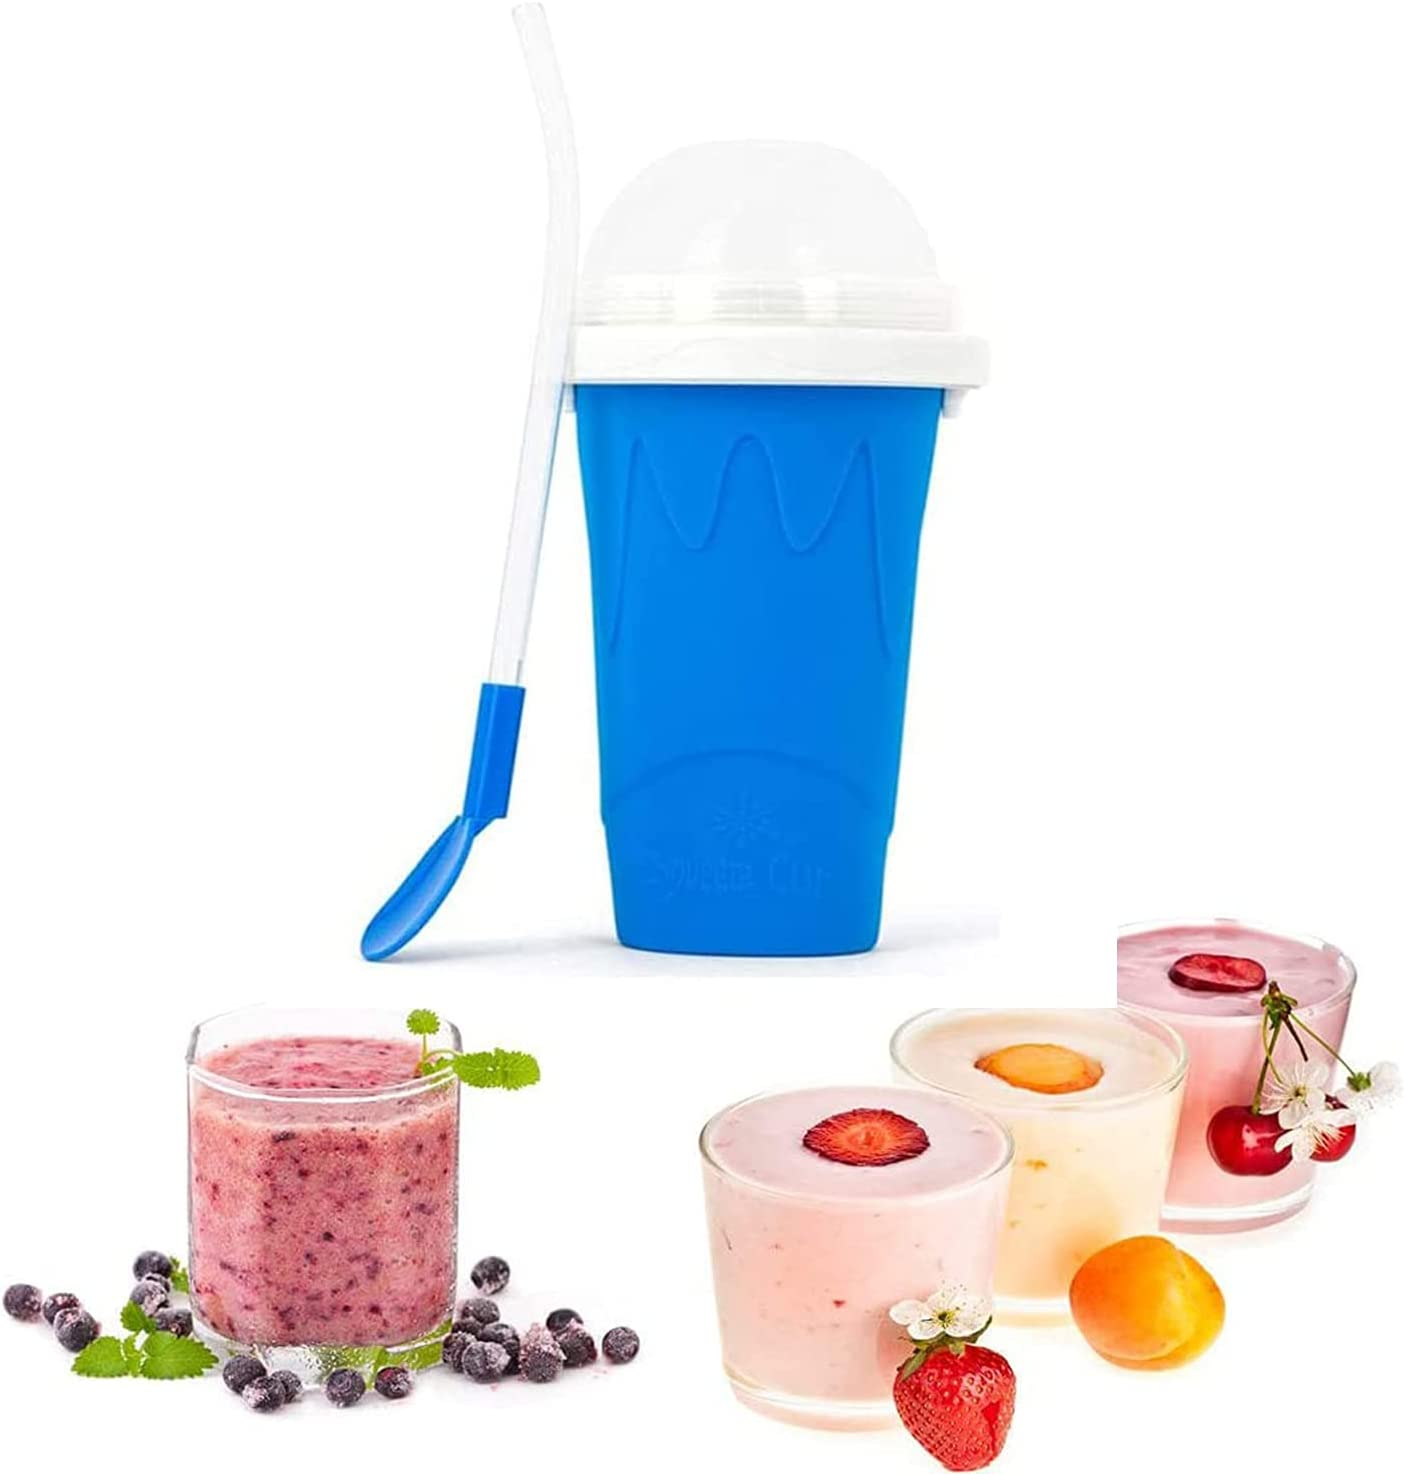 ZHONGPIN Slushie Maker Cup Squeeze Kids Max Luxury 66% OFF M for